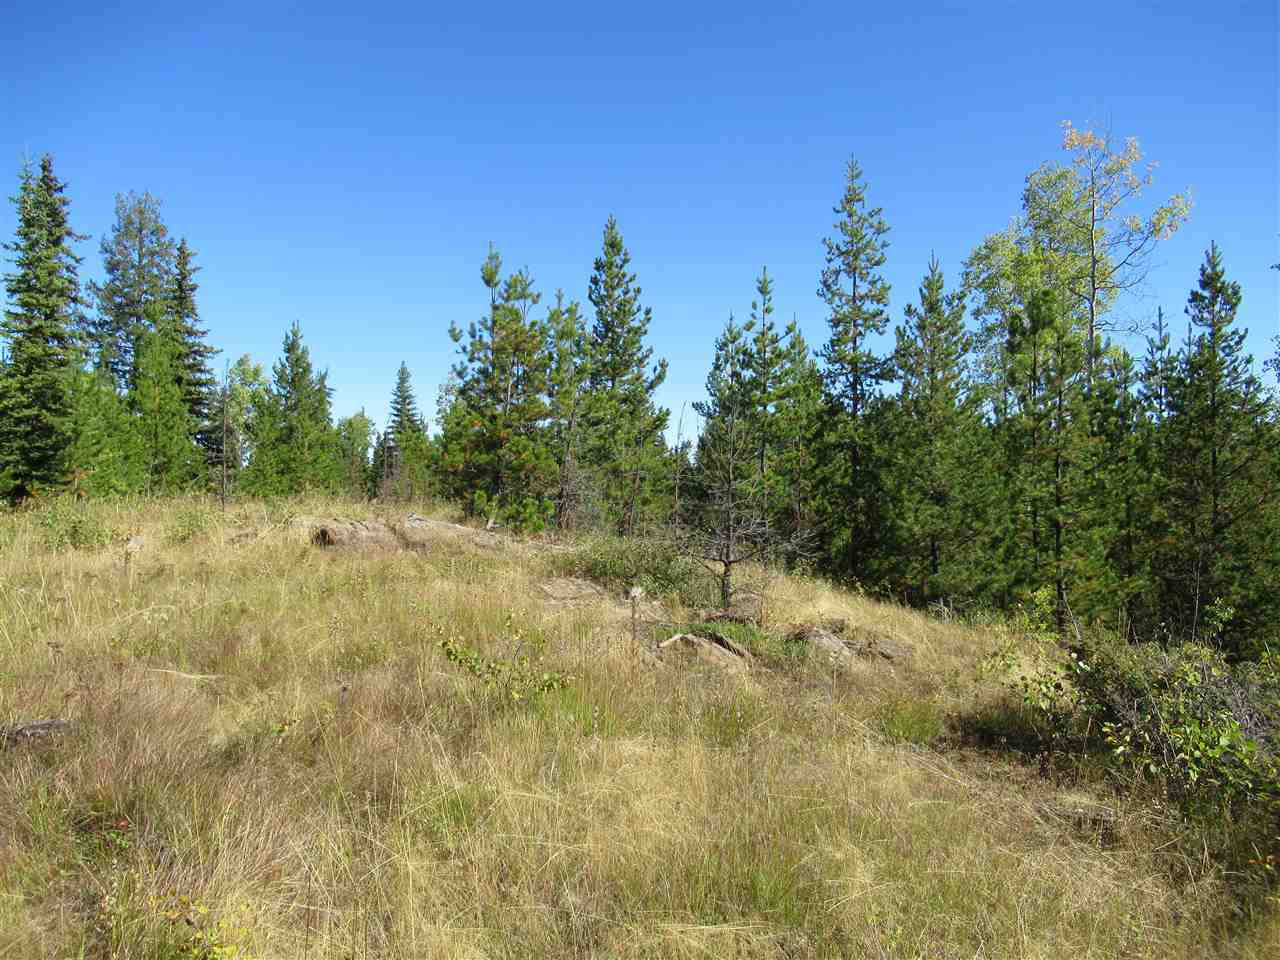 Photo 9: Photos: DL 6426 TONKA Road: 150 Mile House Land for sale (Williams Lake (Zone 27))  : MLS®# R2497364